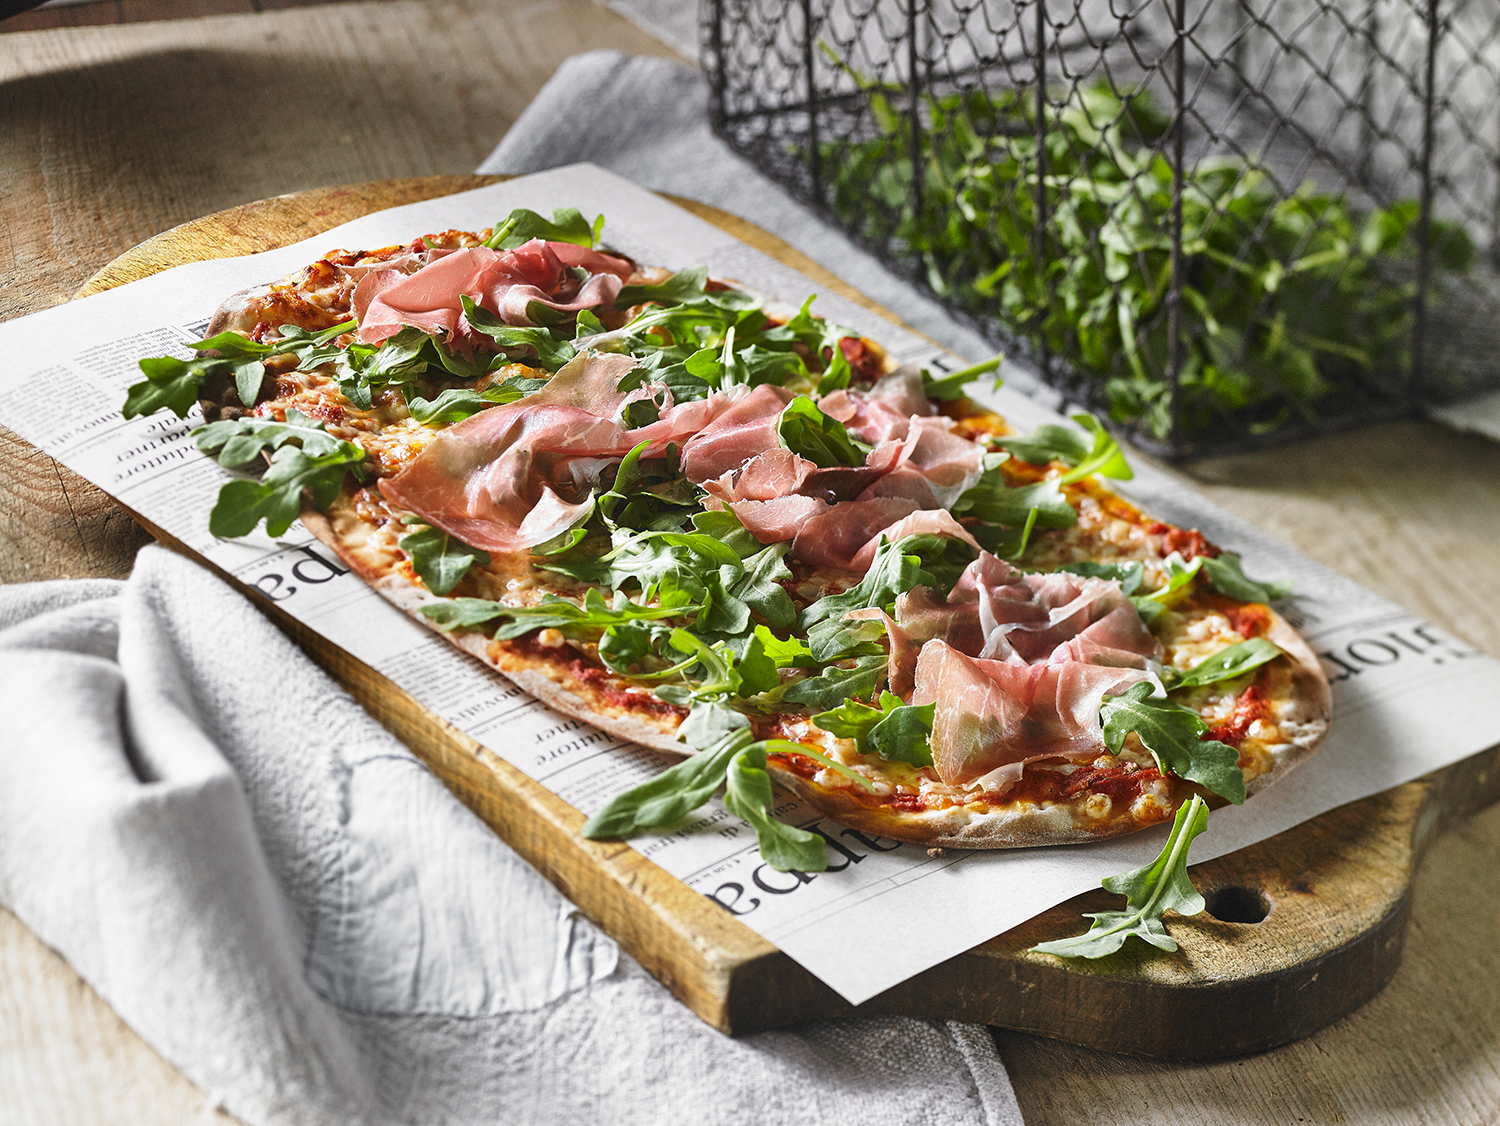 http://travelodgealma.com/wp-content/uploads/sites/2/2020/06/pizza-prosciutto-roquette.jpg